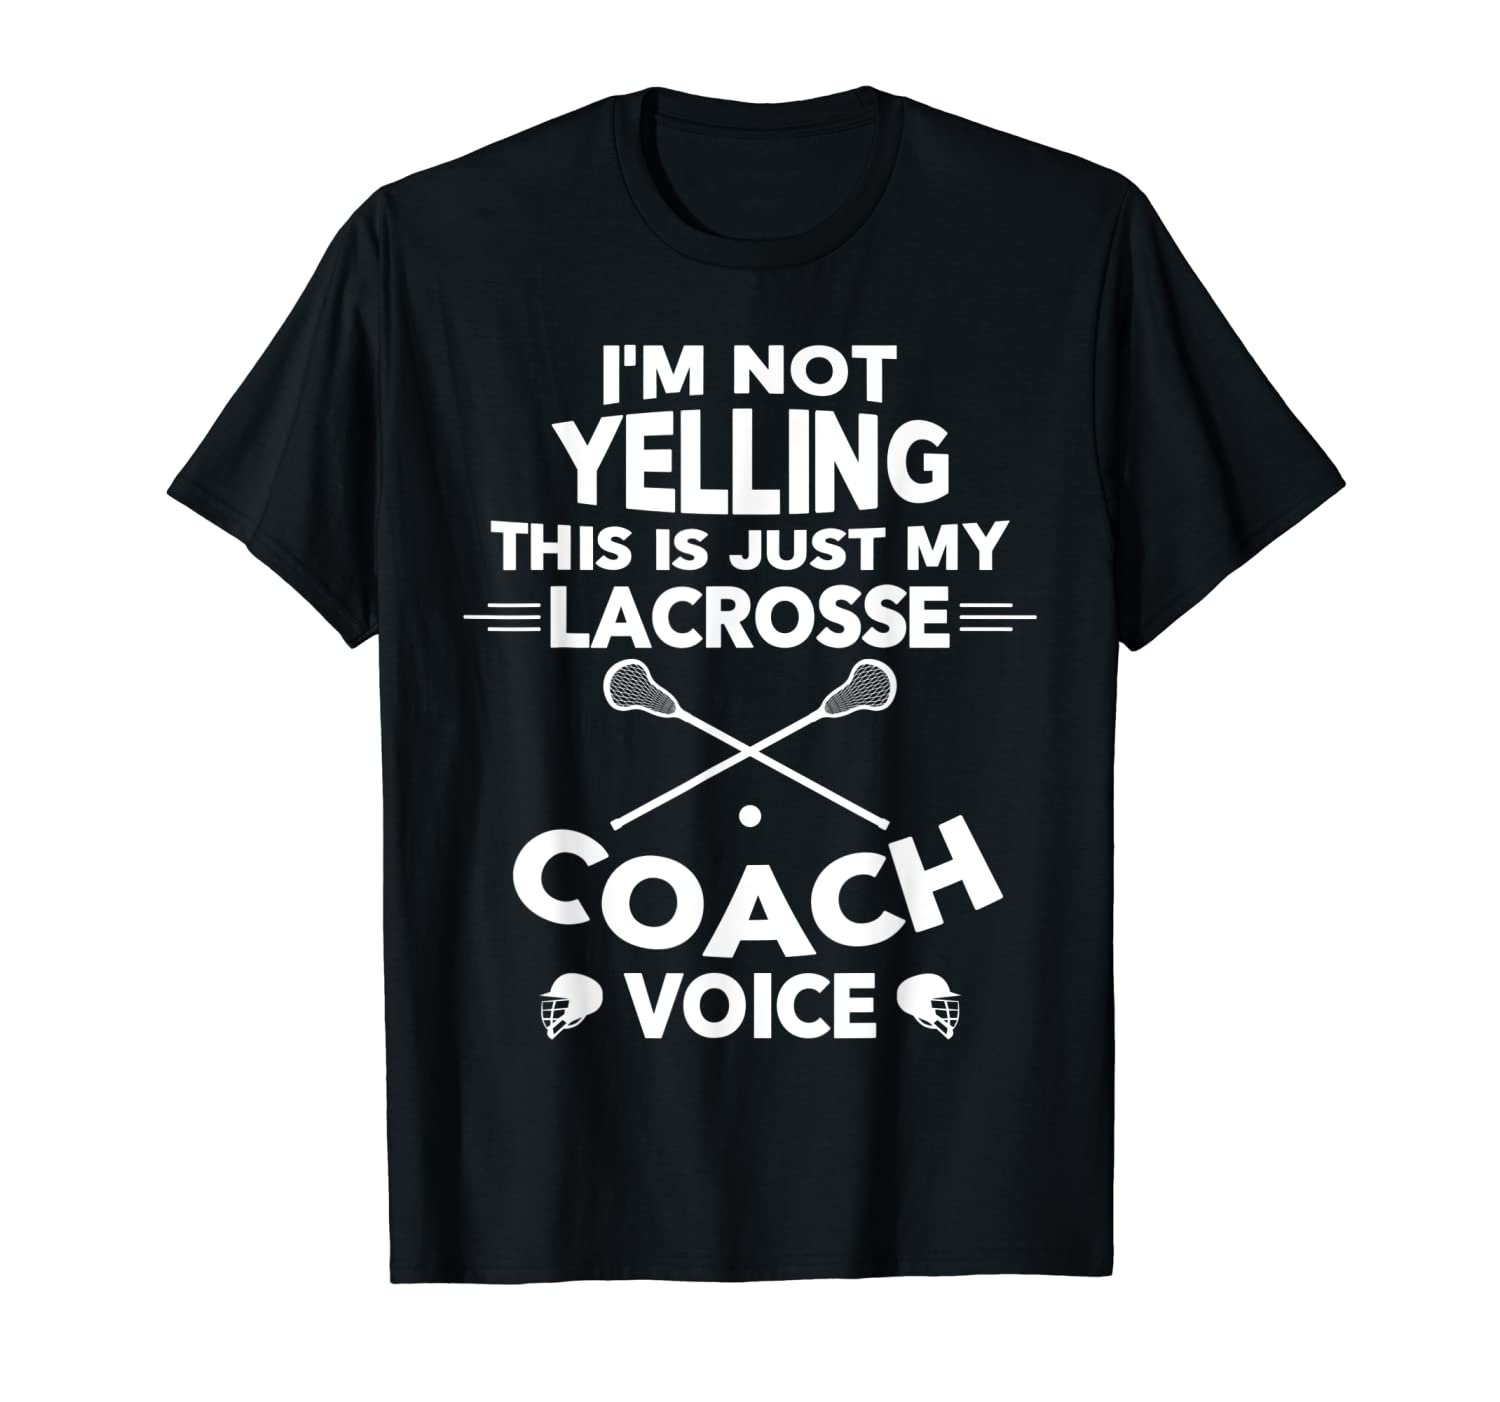 Funny Lacrosse Coach Lax Lacrosse Player Gifts Shirts